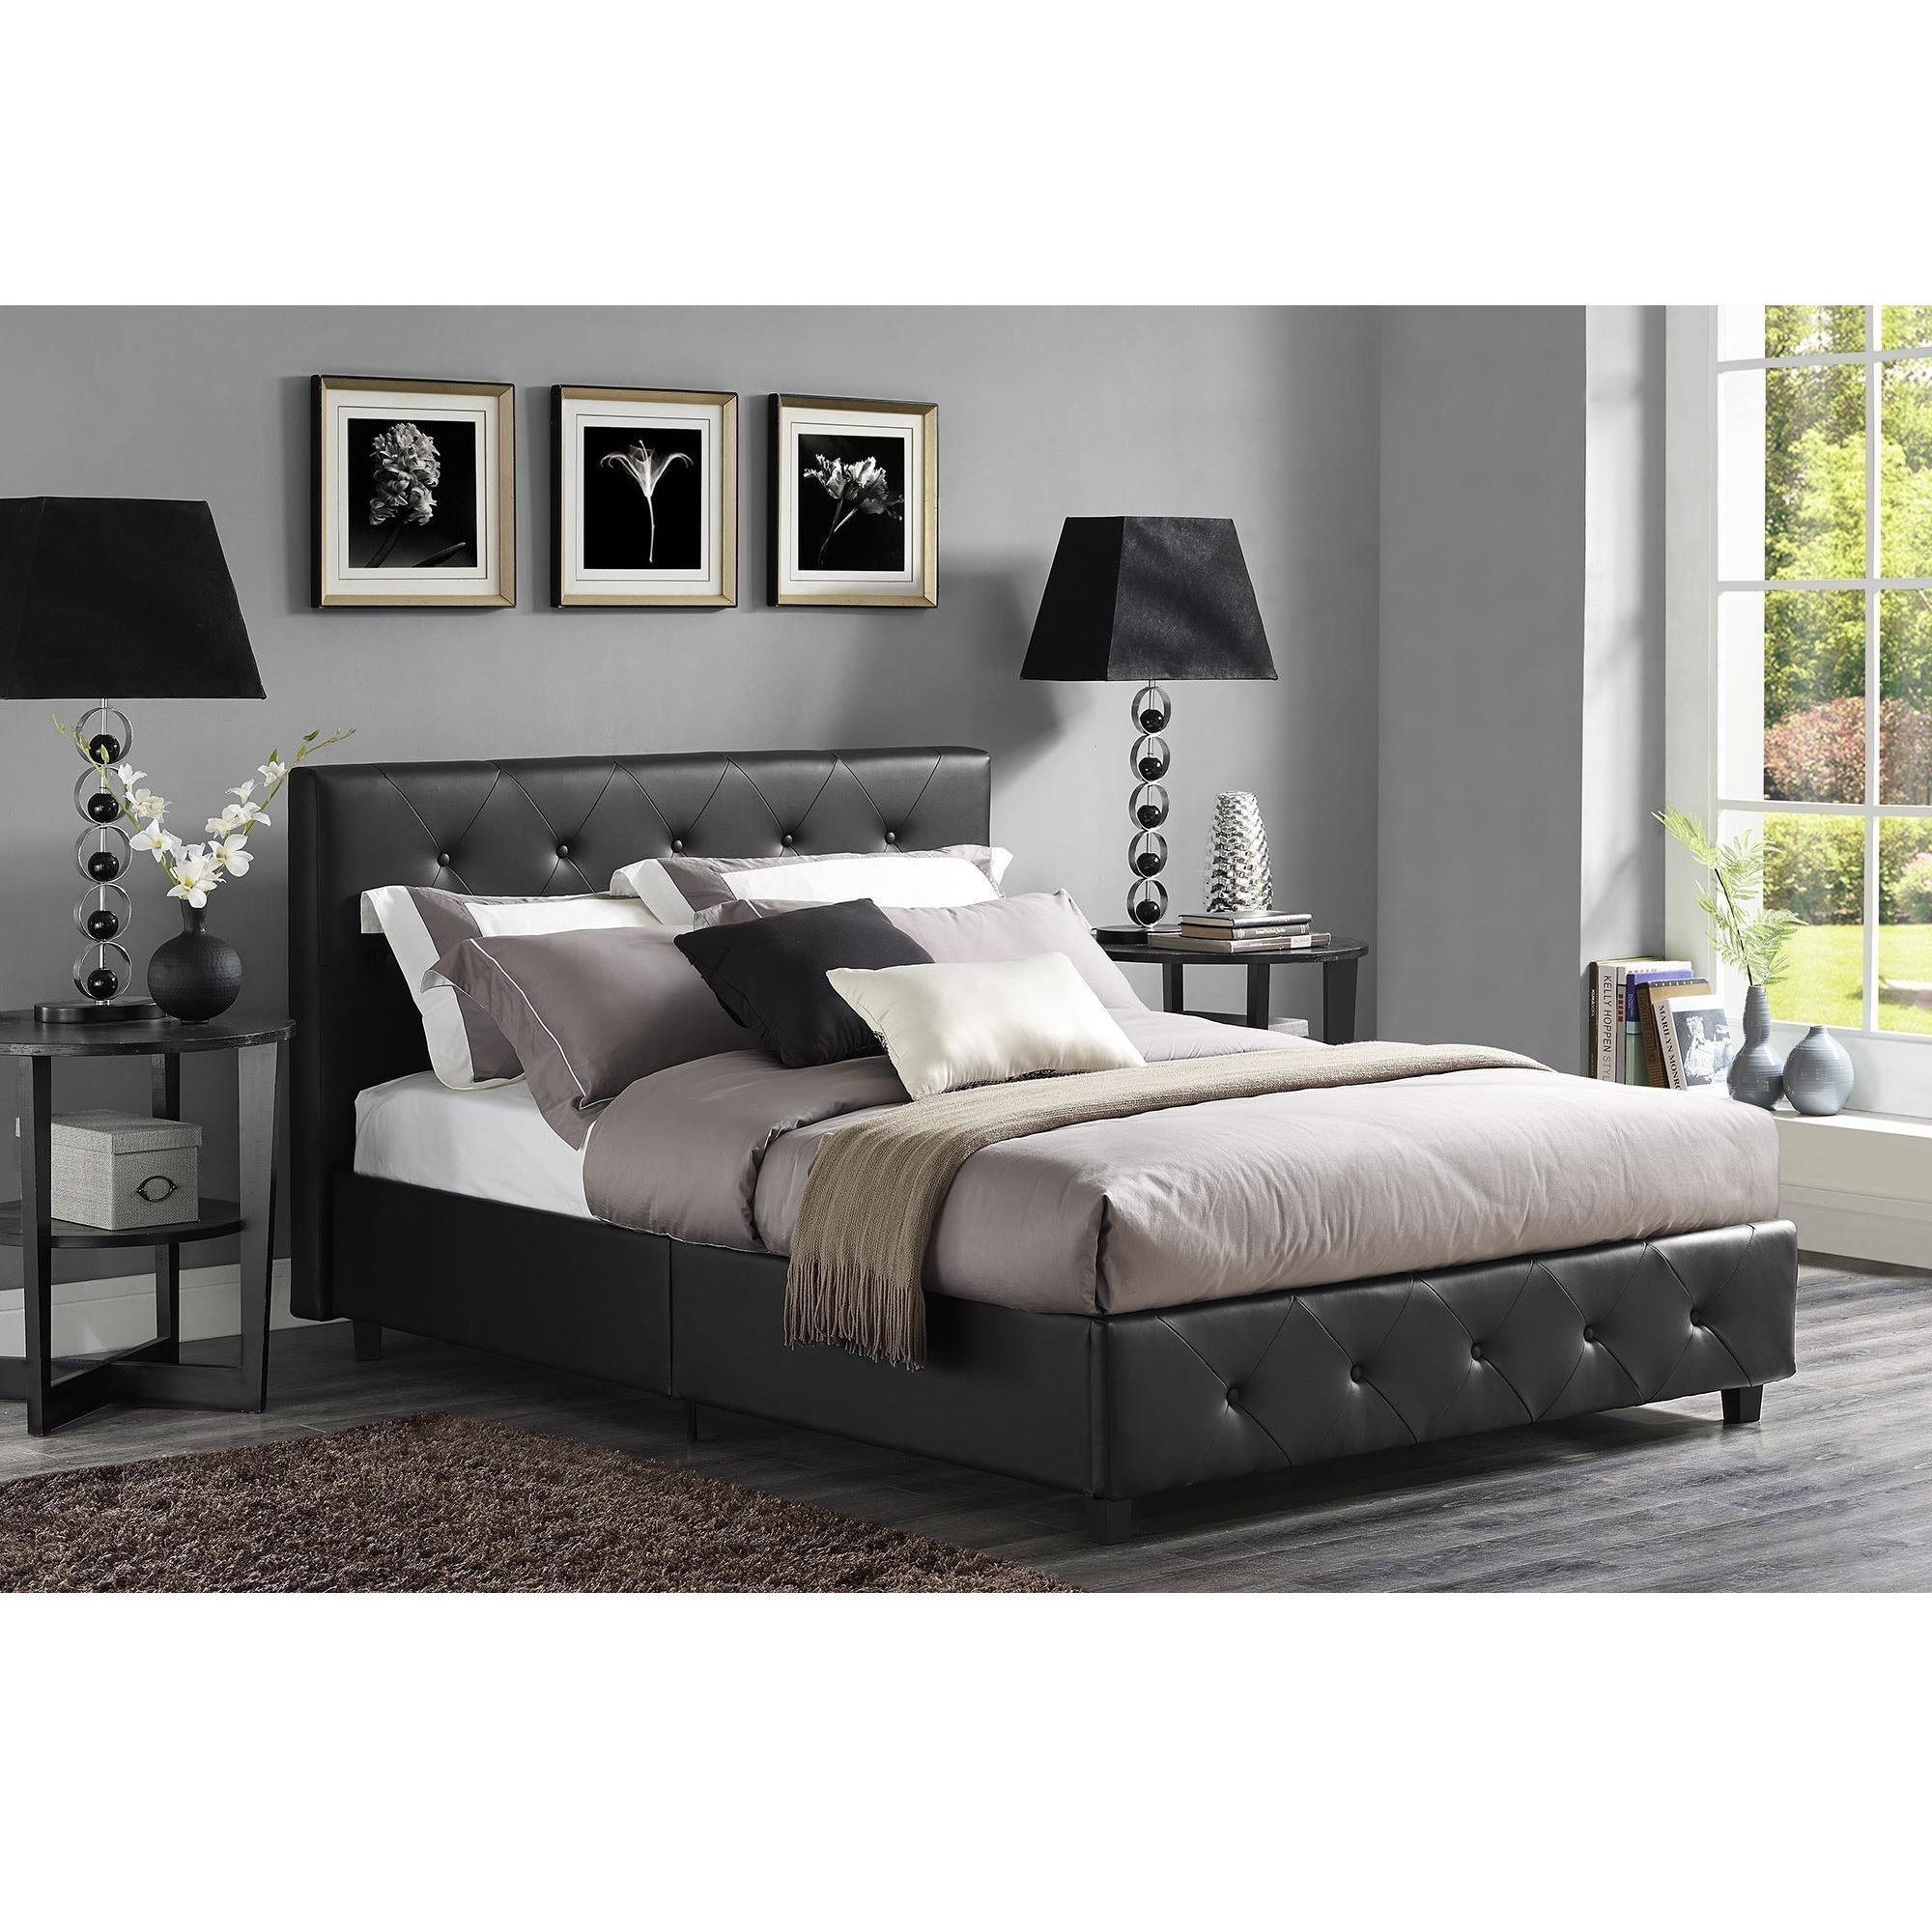 dhp dakota black faux leather upholstered bed by dhp. Black Bedroom Furniture Sets. Home Design Ideas